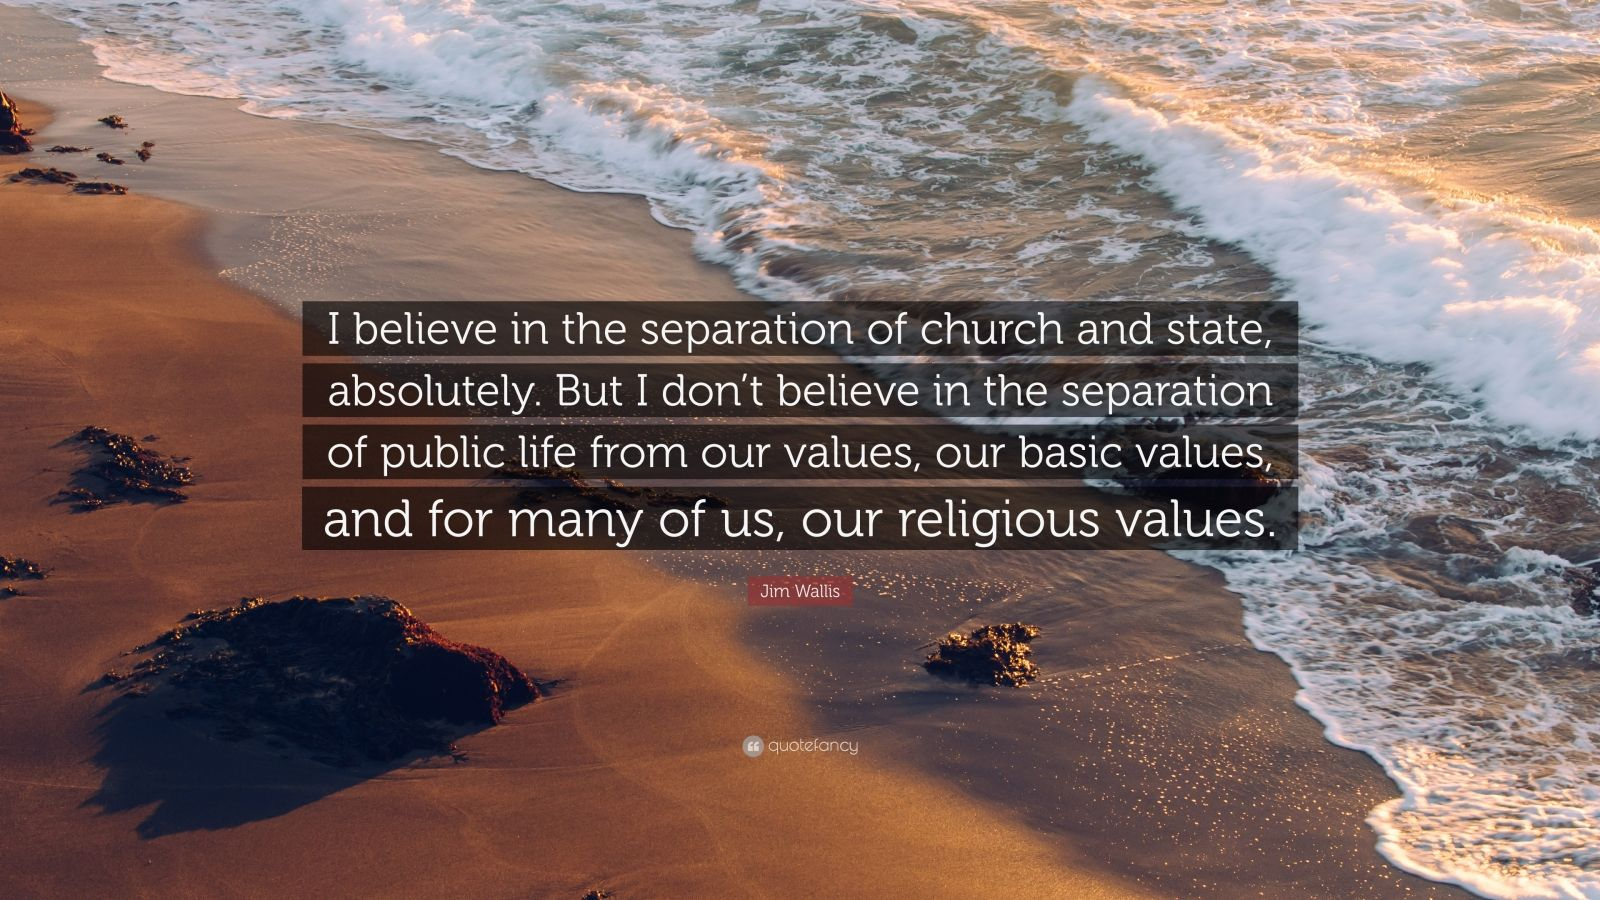 """Jim Wallis Quote: """"I believe in the separation of church and state, absolutely. But I don't believe in the separation of public life from our values, our basic values, and for many of us, our religious values."""""""